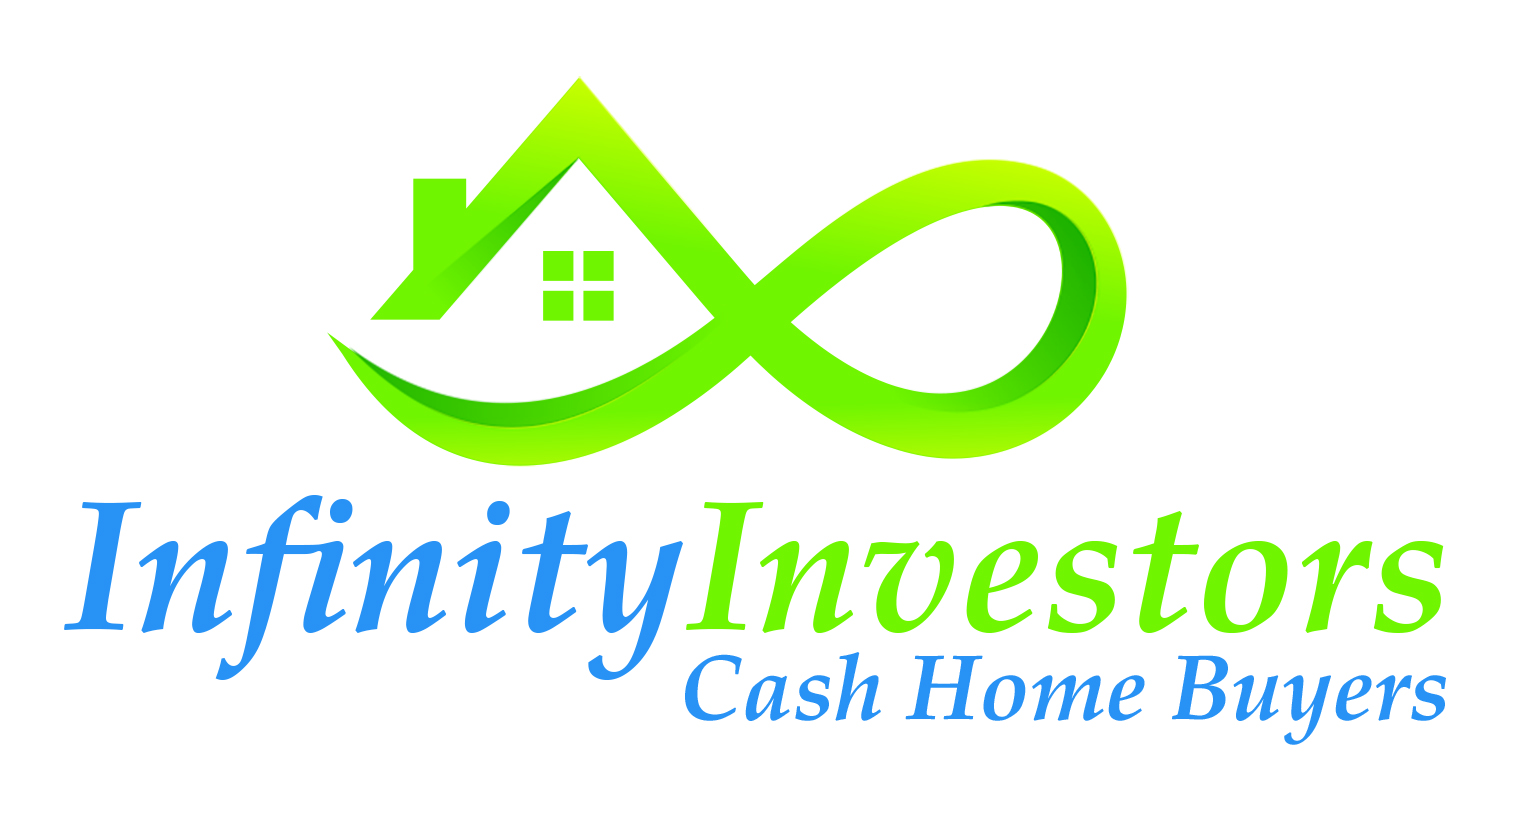 Infinity Investors Cash Home Buyers logo